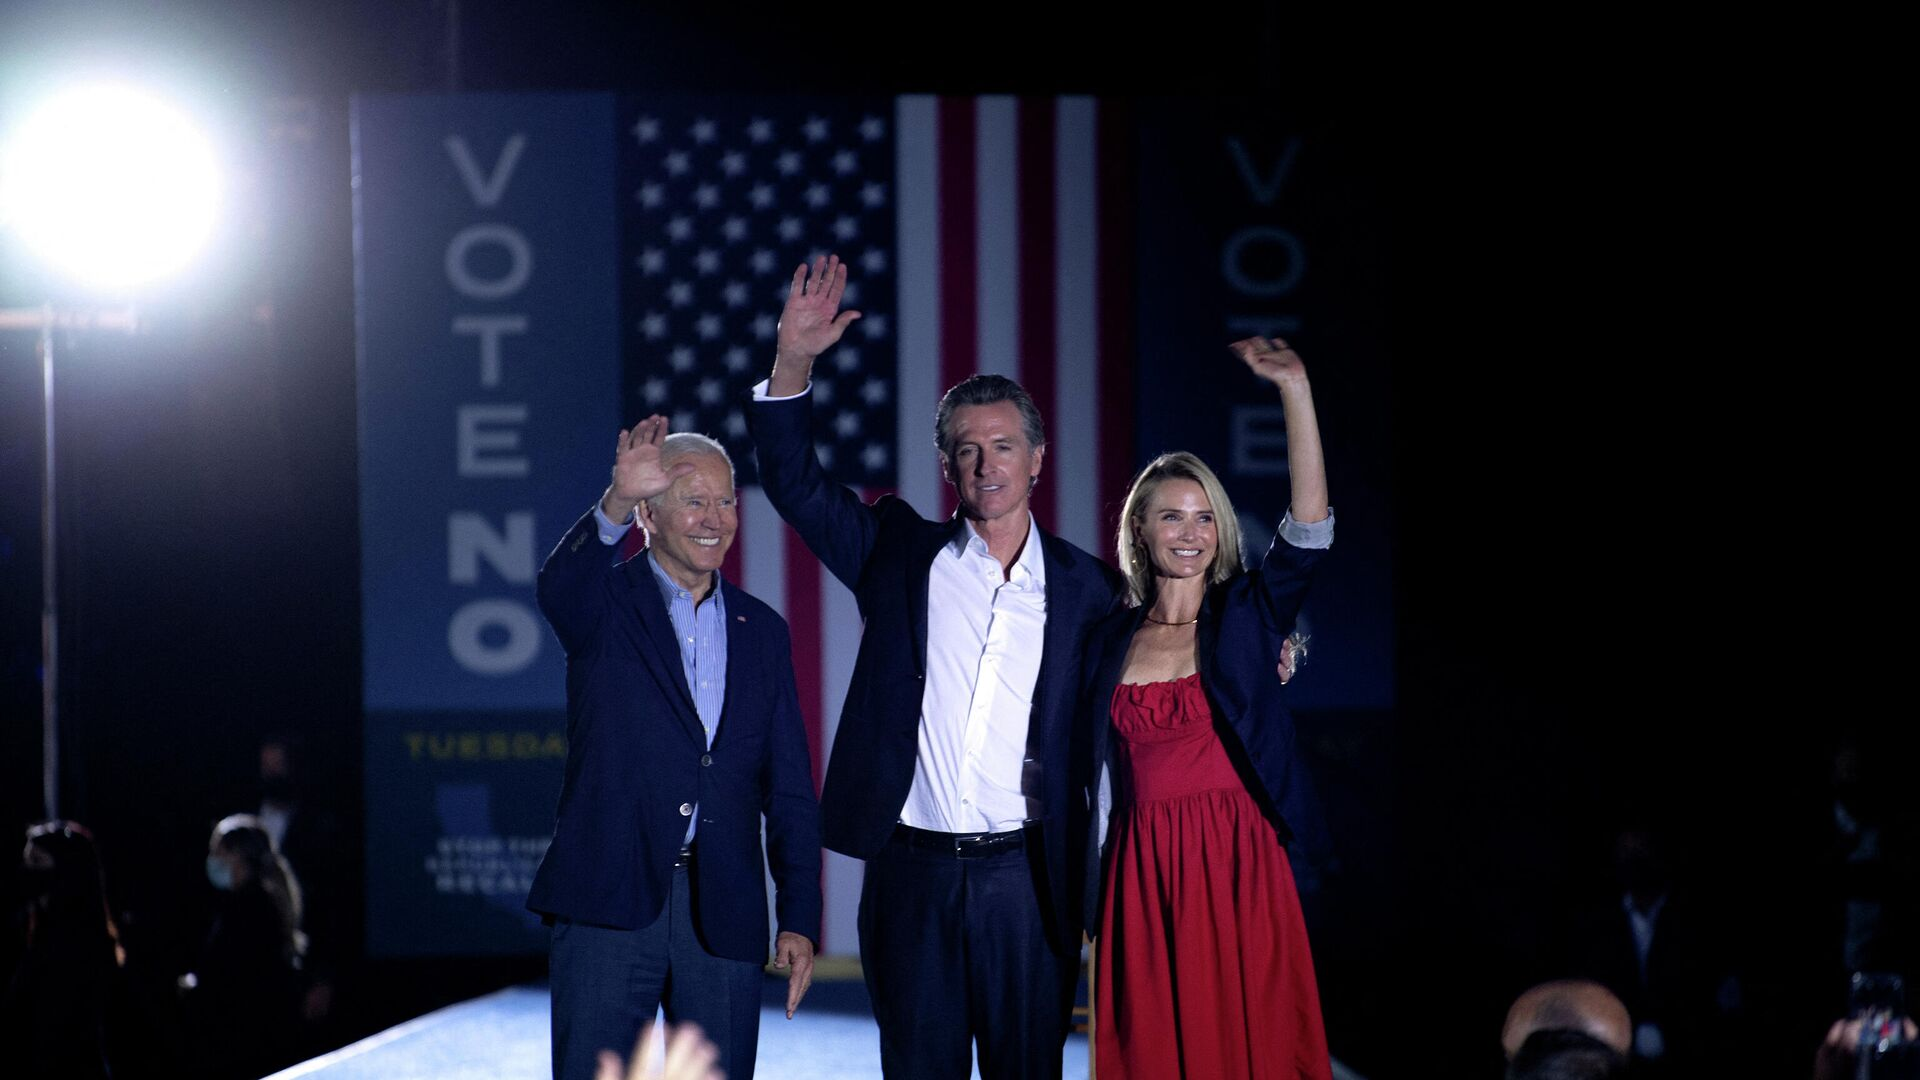 US President Joe Biden, California Governor Gavin Newsom and his wife Jennifer Siebel Newsom wave to supporters after a campaign event at Long Beach City College in Long Beach, California on September 13, 2021. - Sputnik International, 1920, 14.09.2021